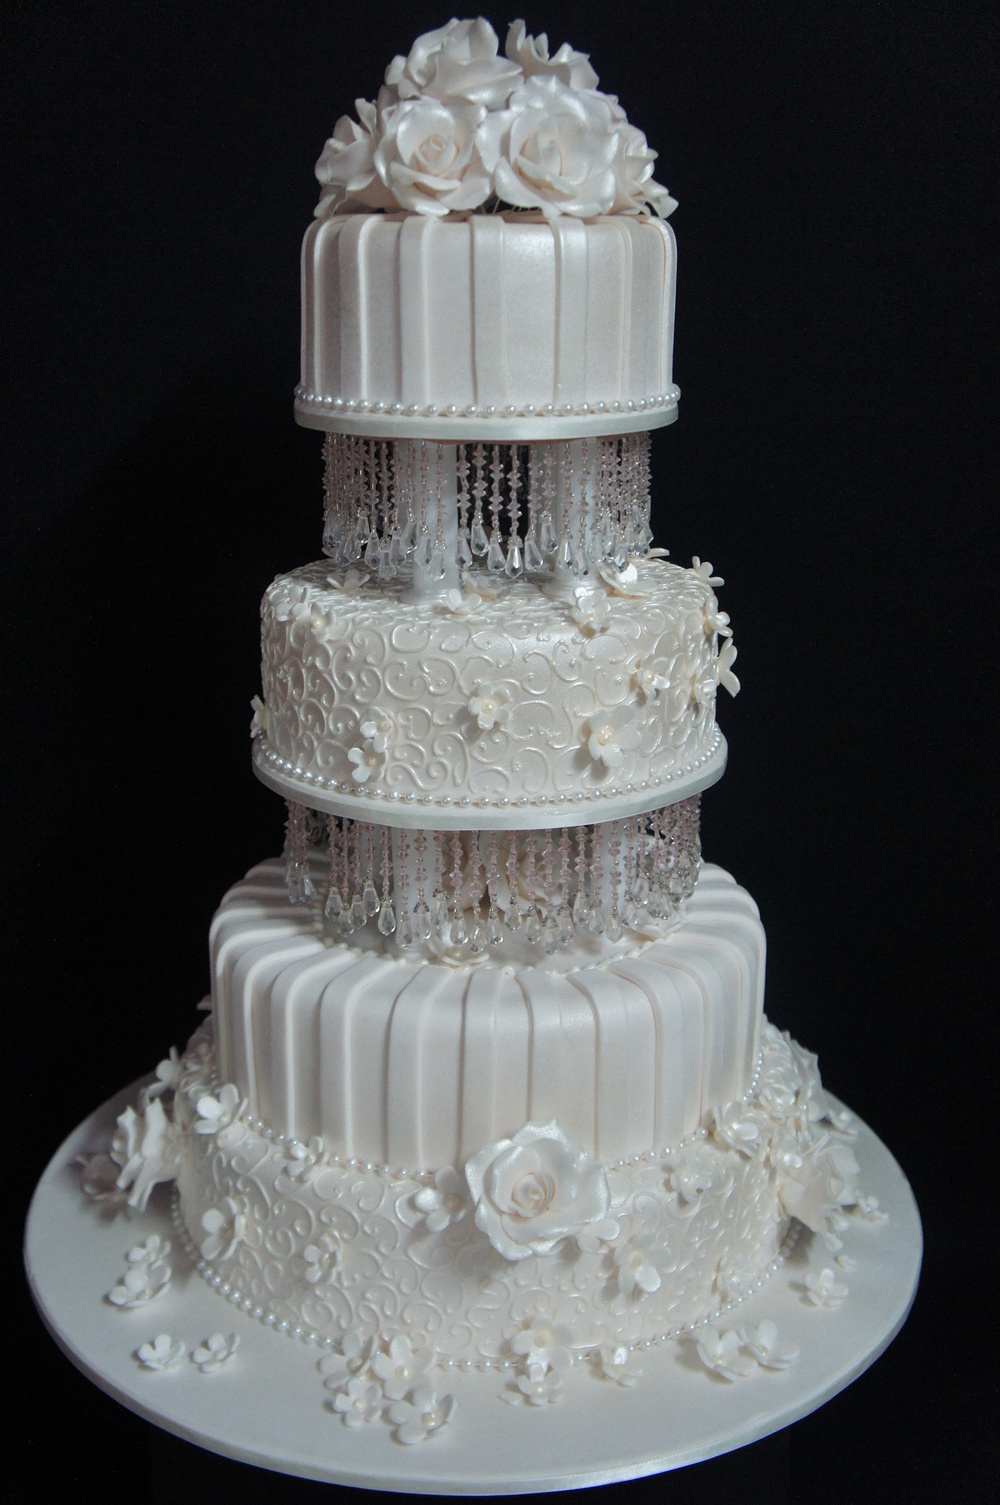 Cake Feature 6.jpg